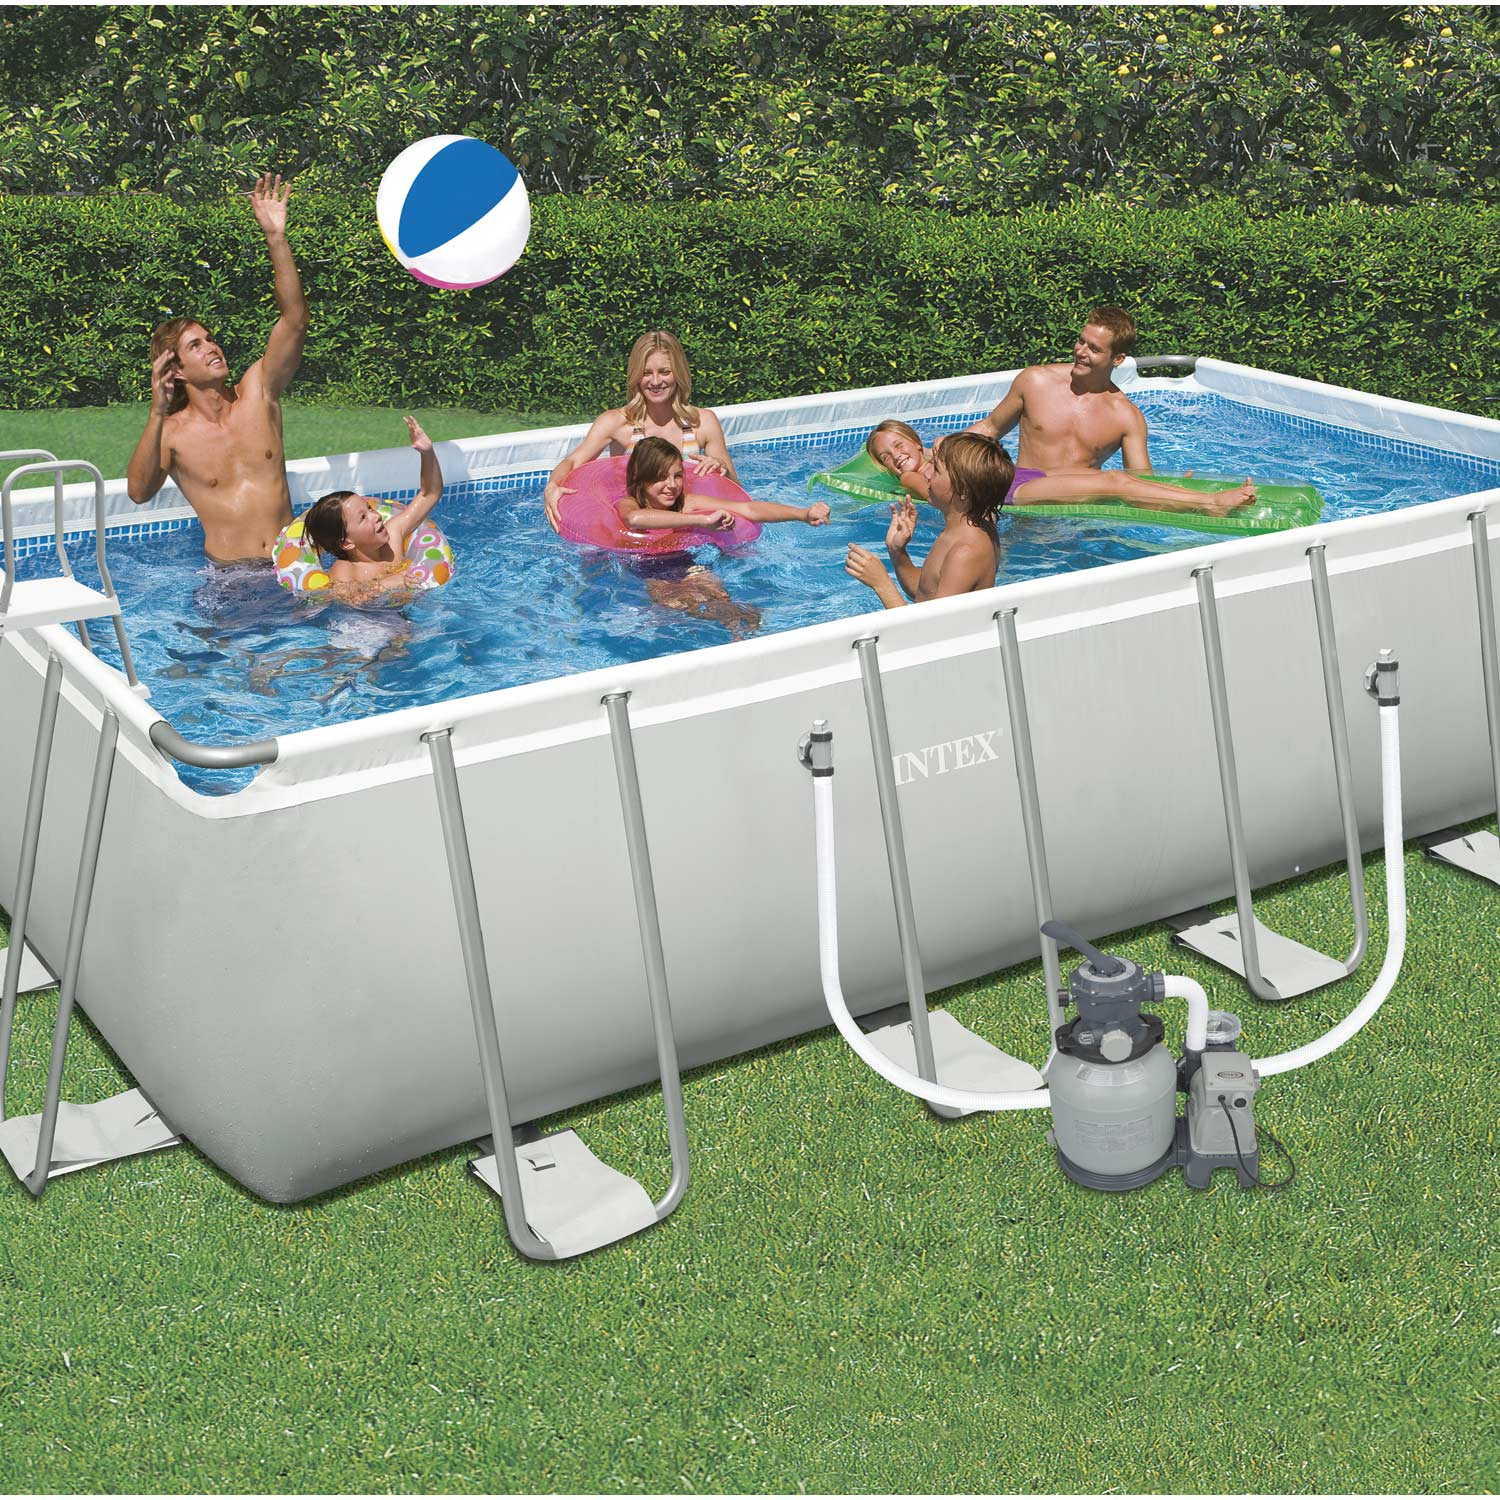 Piscine hors sol autoportante tubulaire ultra silver intex for Piscine hors sol qui explose